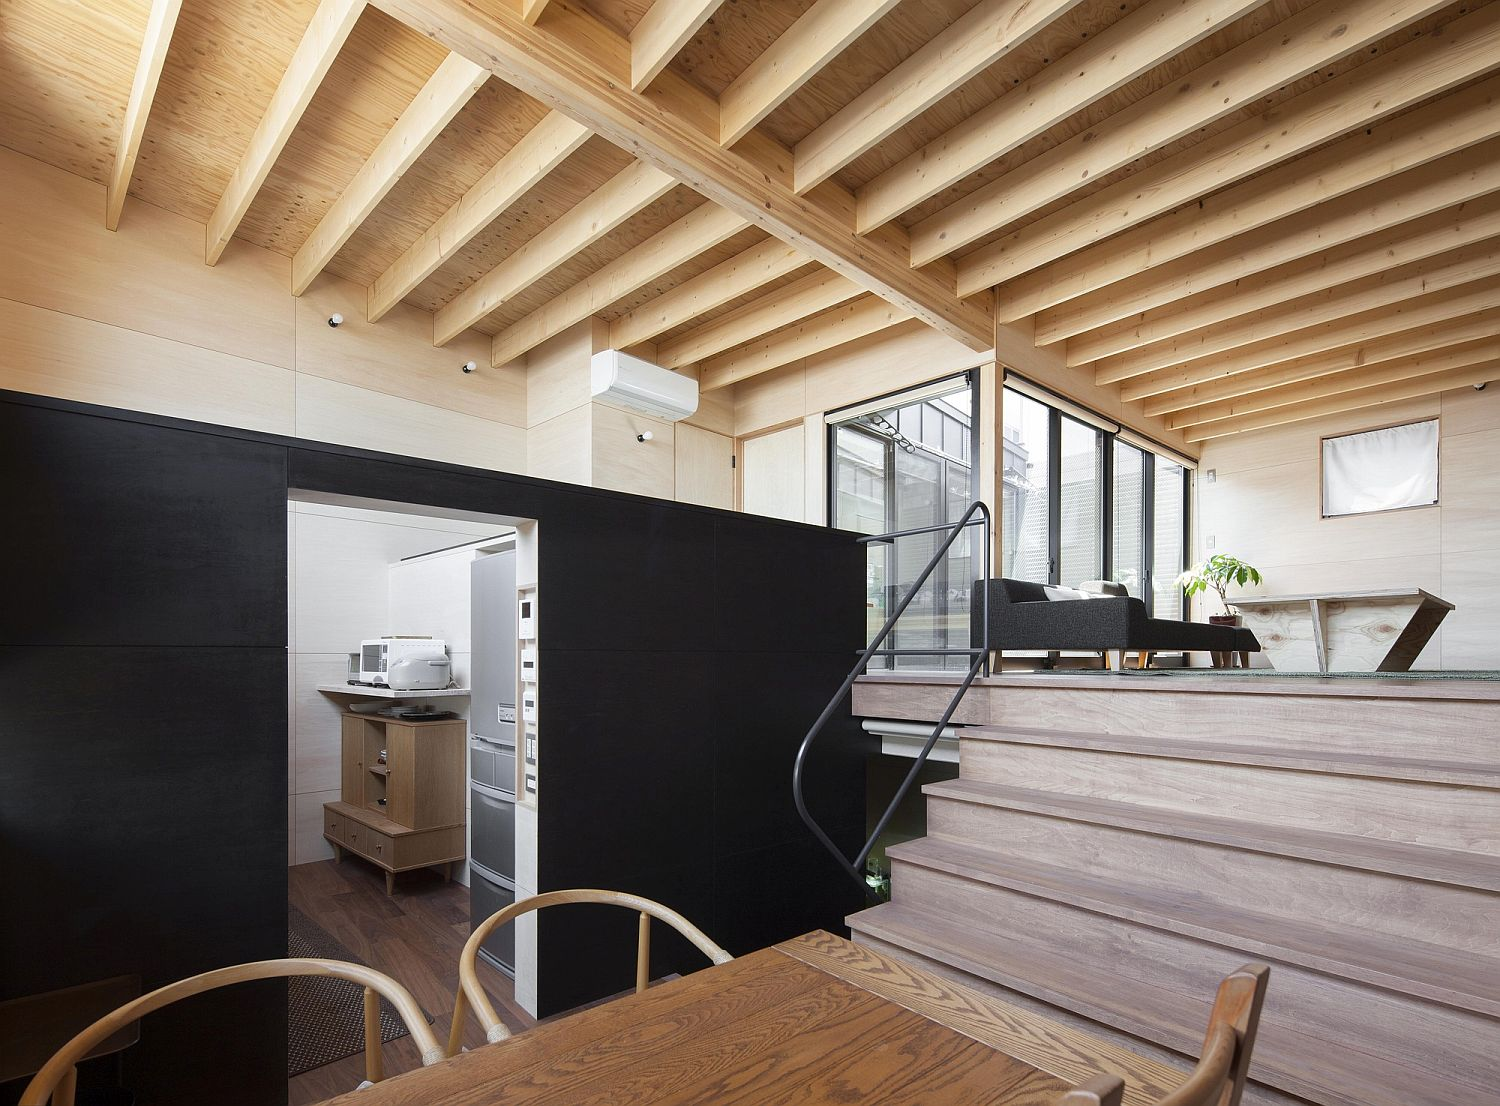 Space-savvy kitchen and dining area of the Japanese home